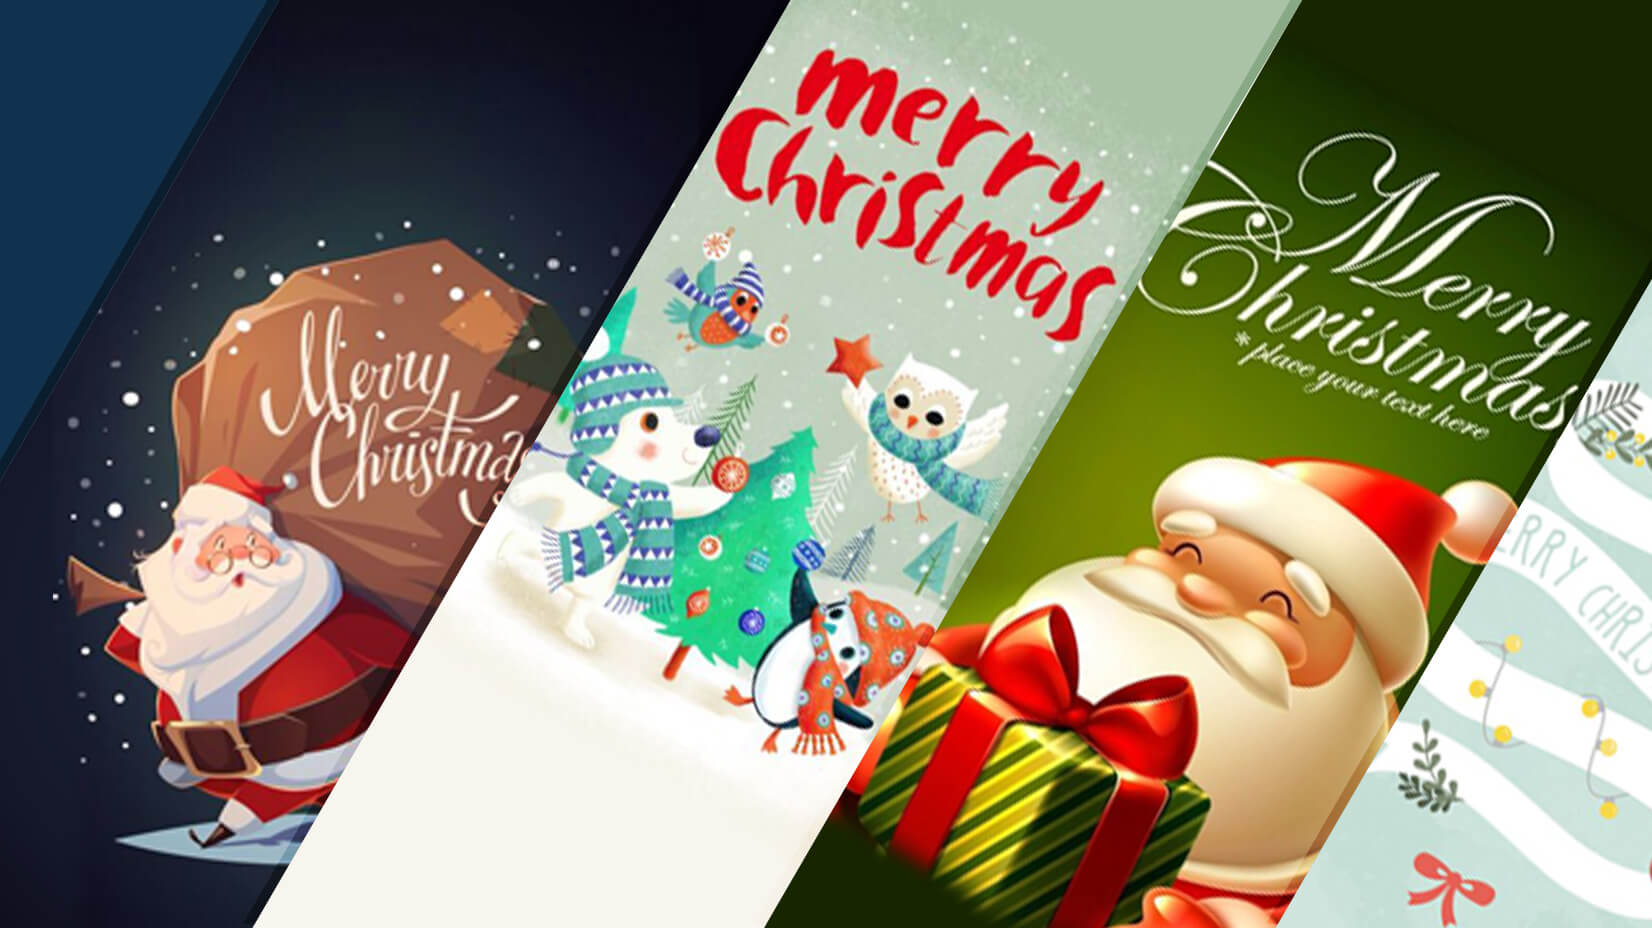 99 Heart-warming Cartoon Christmas Cards | GraphicMama Blog